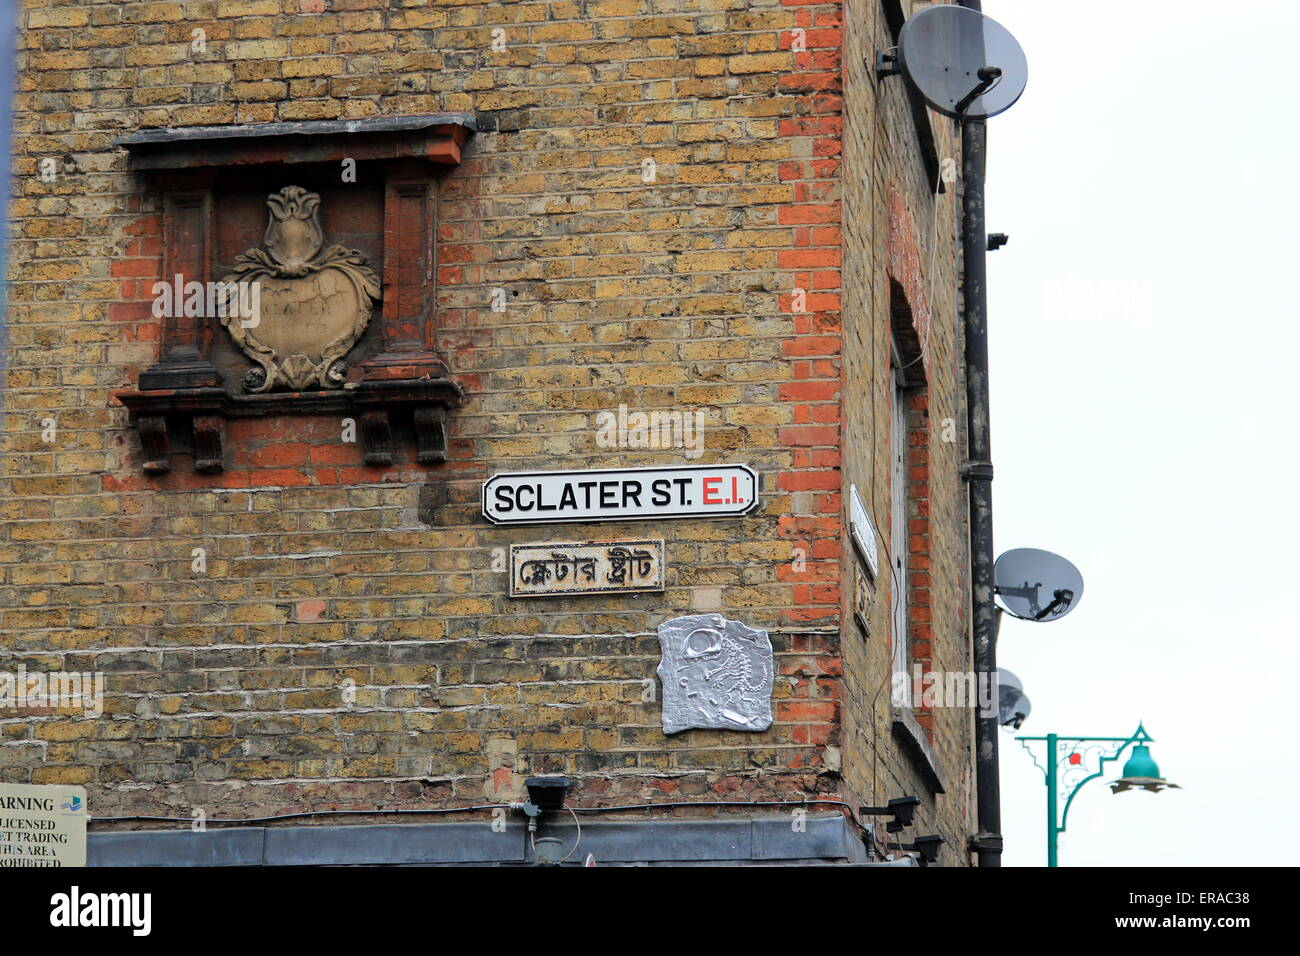 Sclater St street sign on brickwall Stock Photo